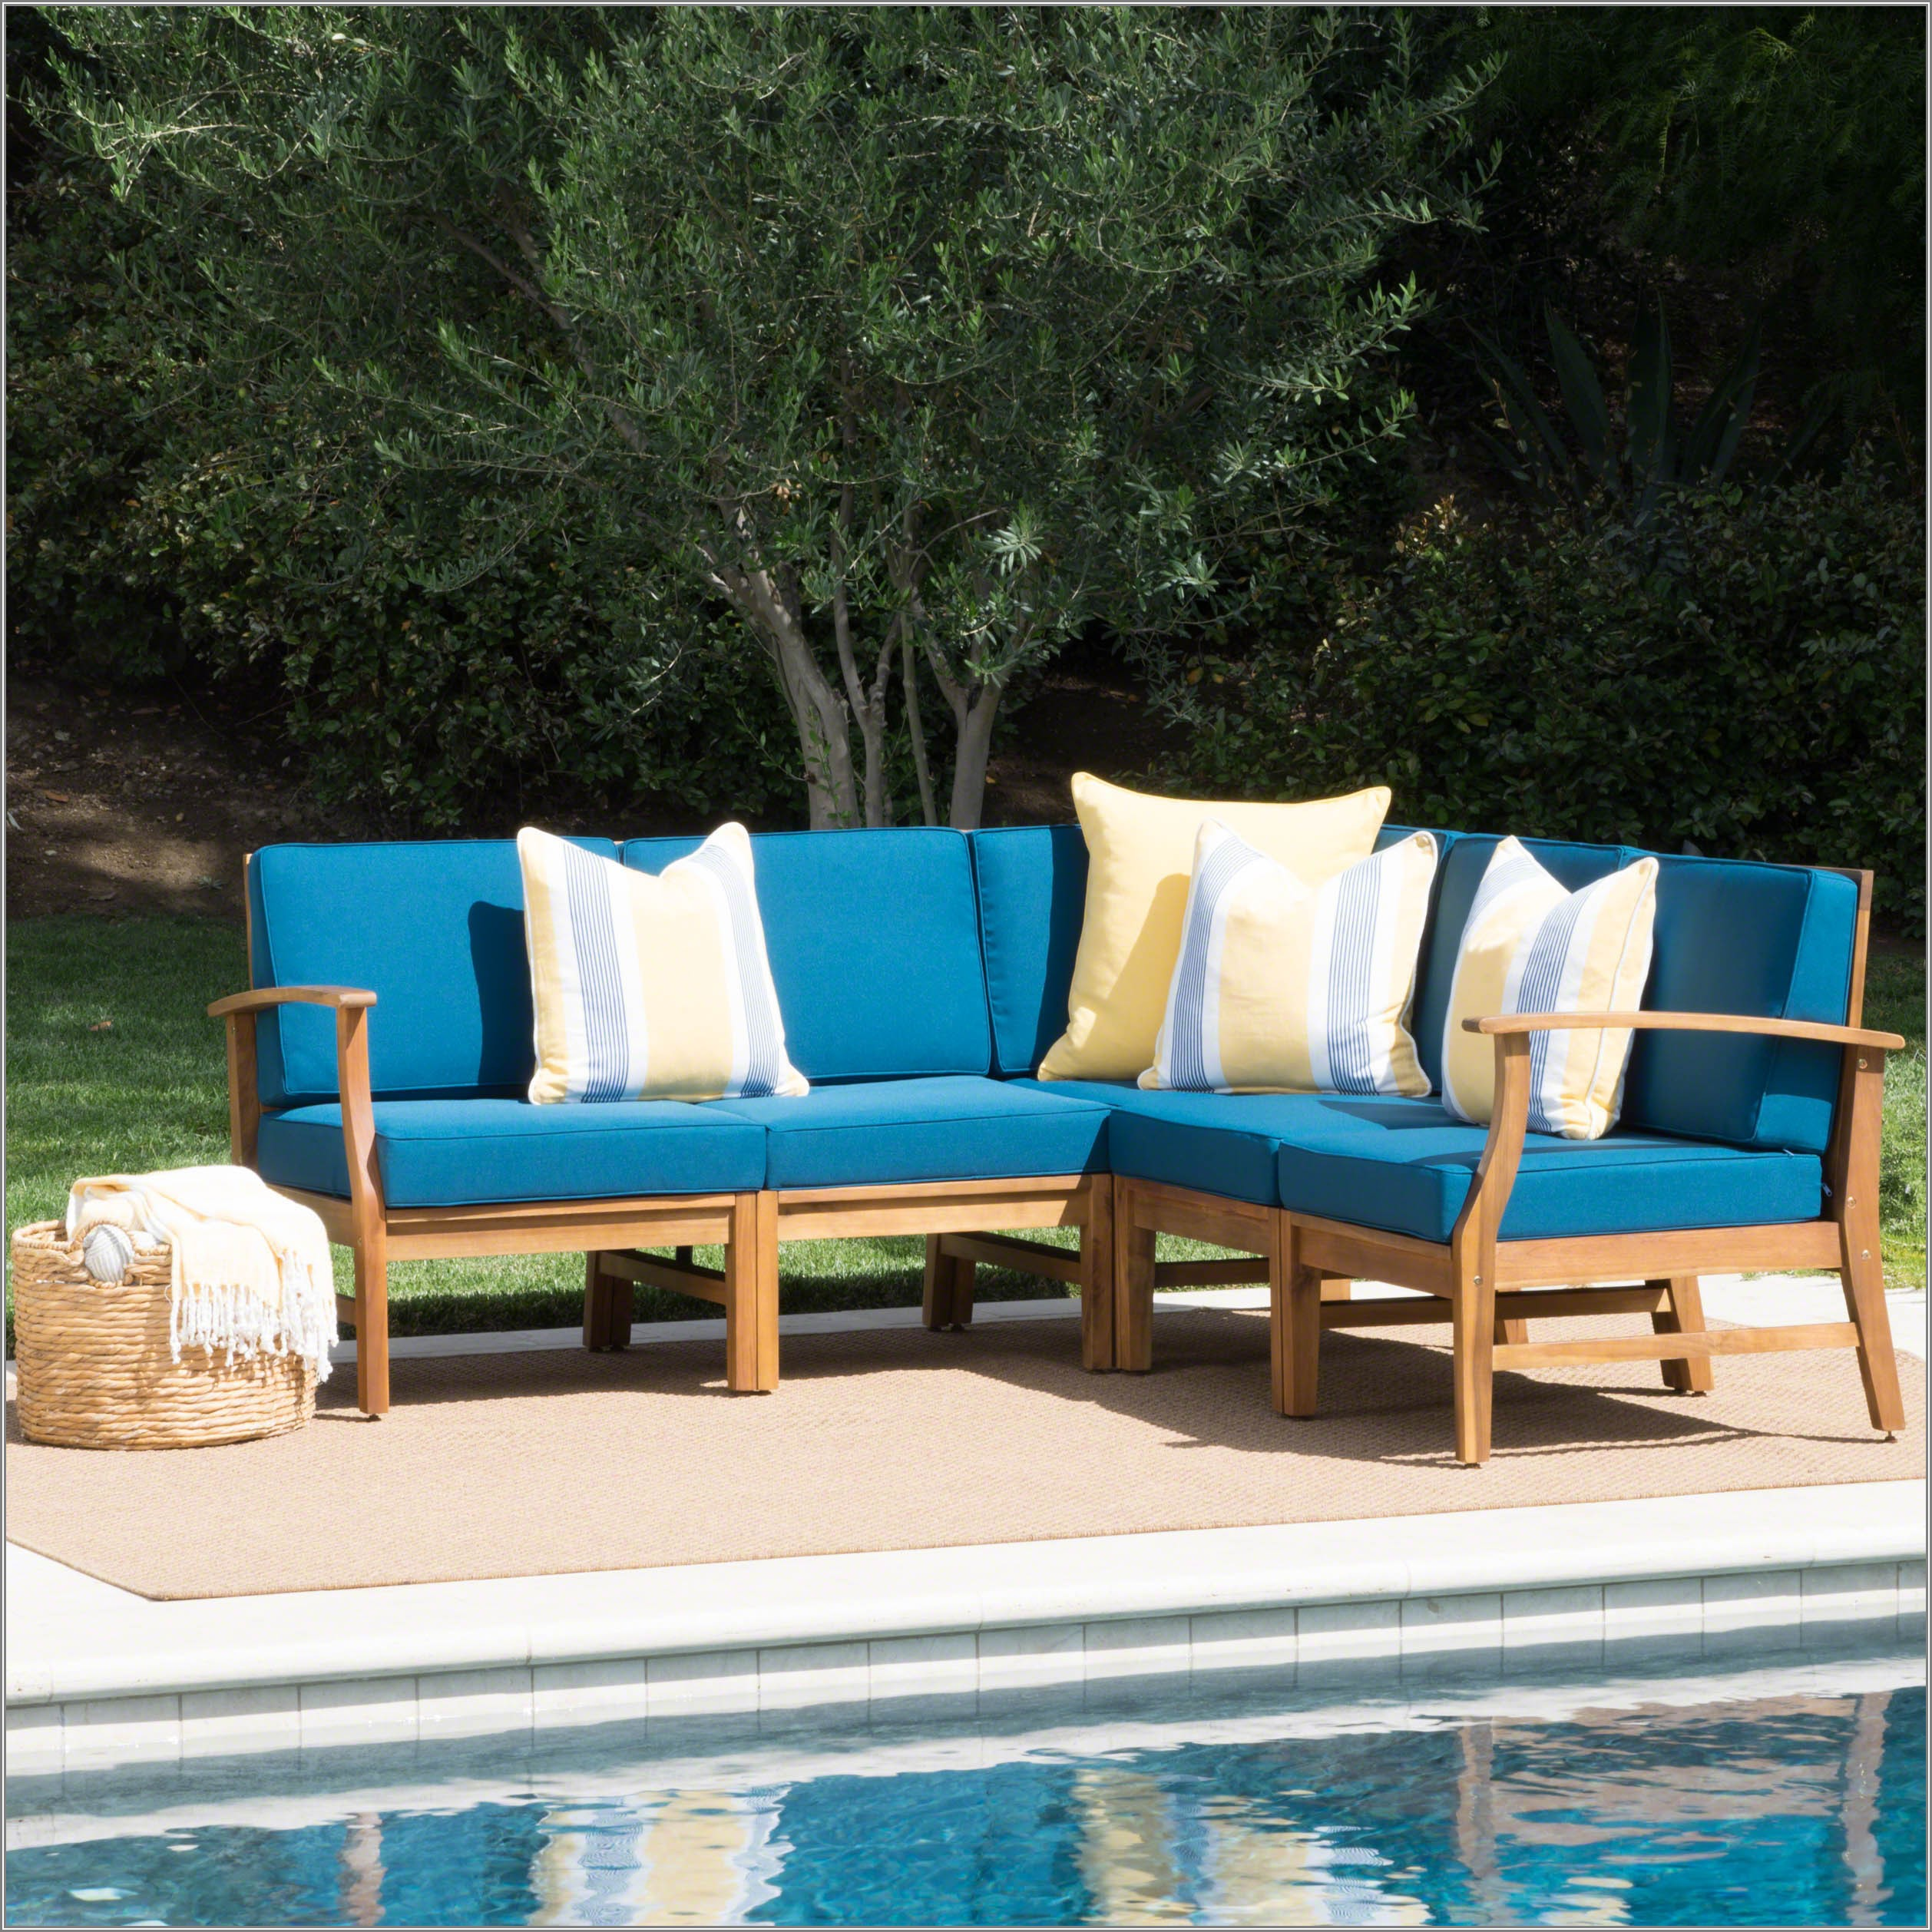 Cushion Covers For Outdoor Patio Furniture